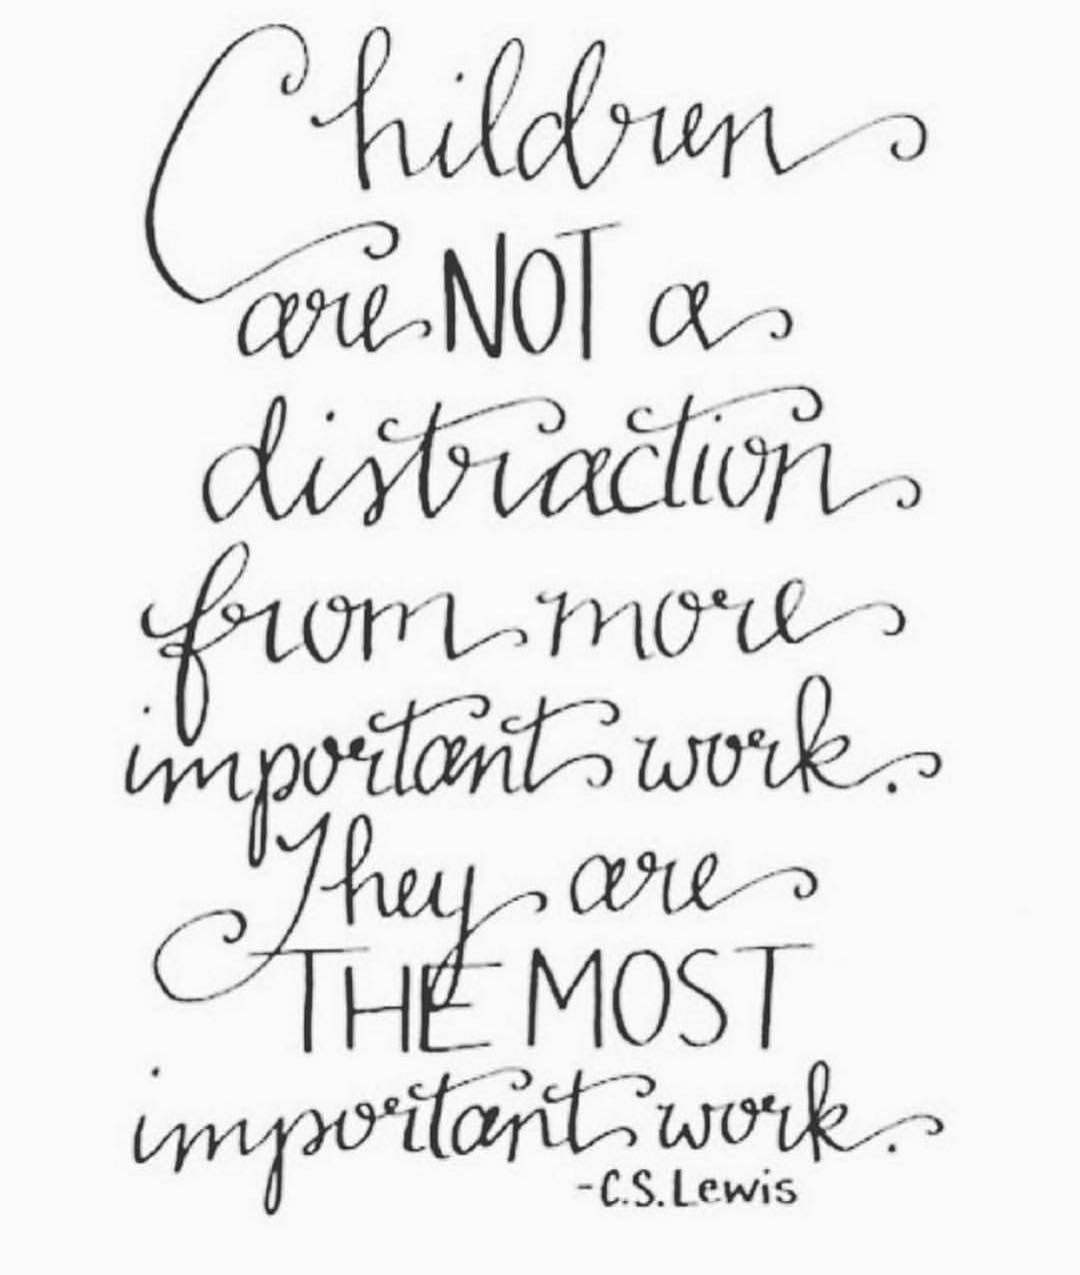 Inspirational Quotes About Loving Children Inspirational Quotes Cslewis Children Love  Parenting Quotes